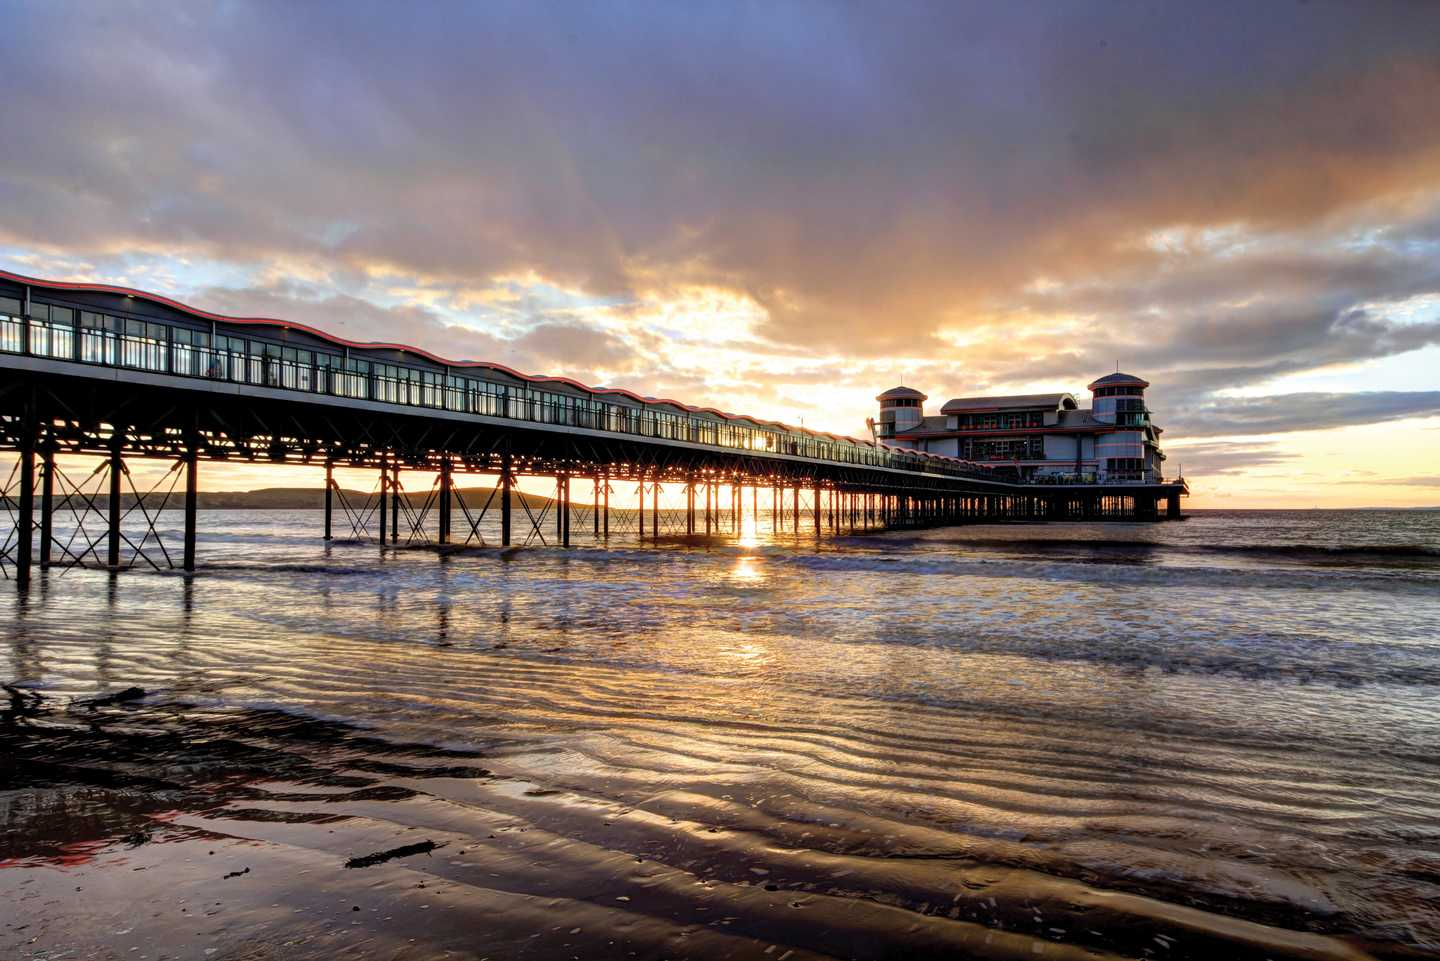 Sunrise over Weston-Super-Mare Grand Pier